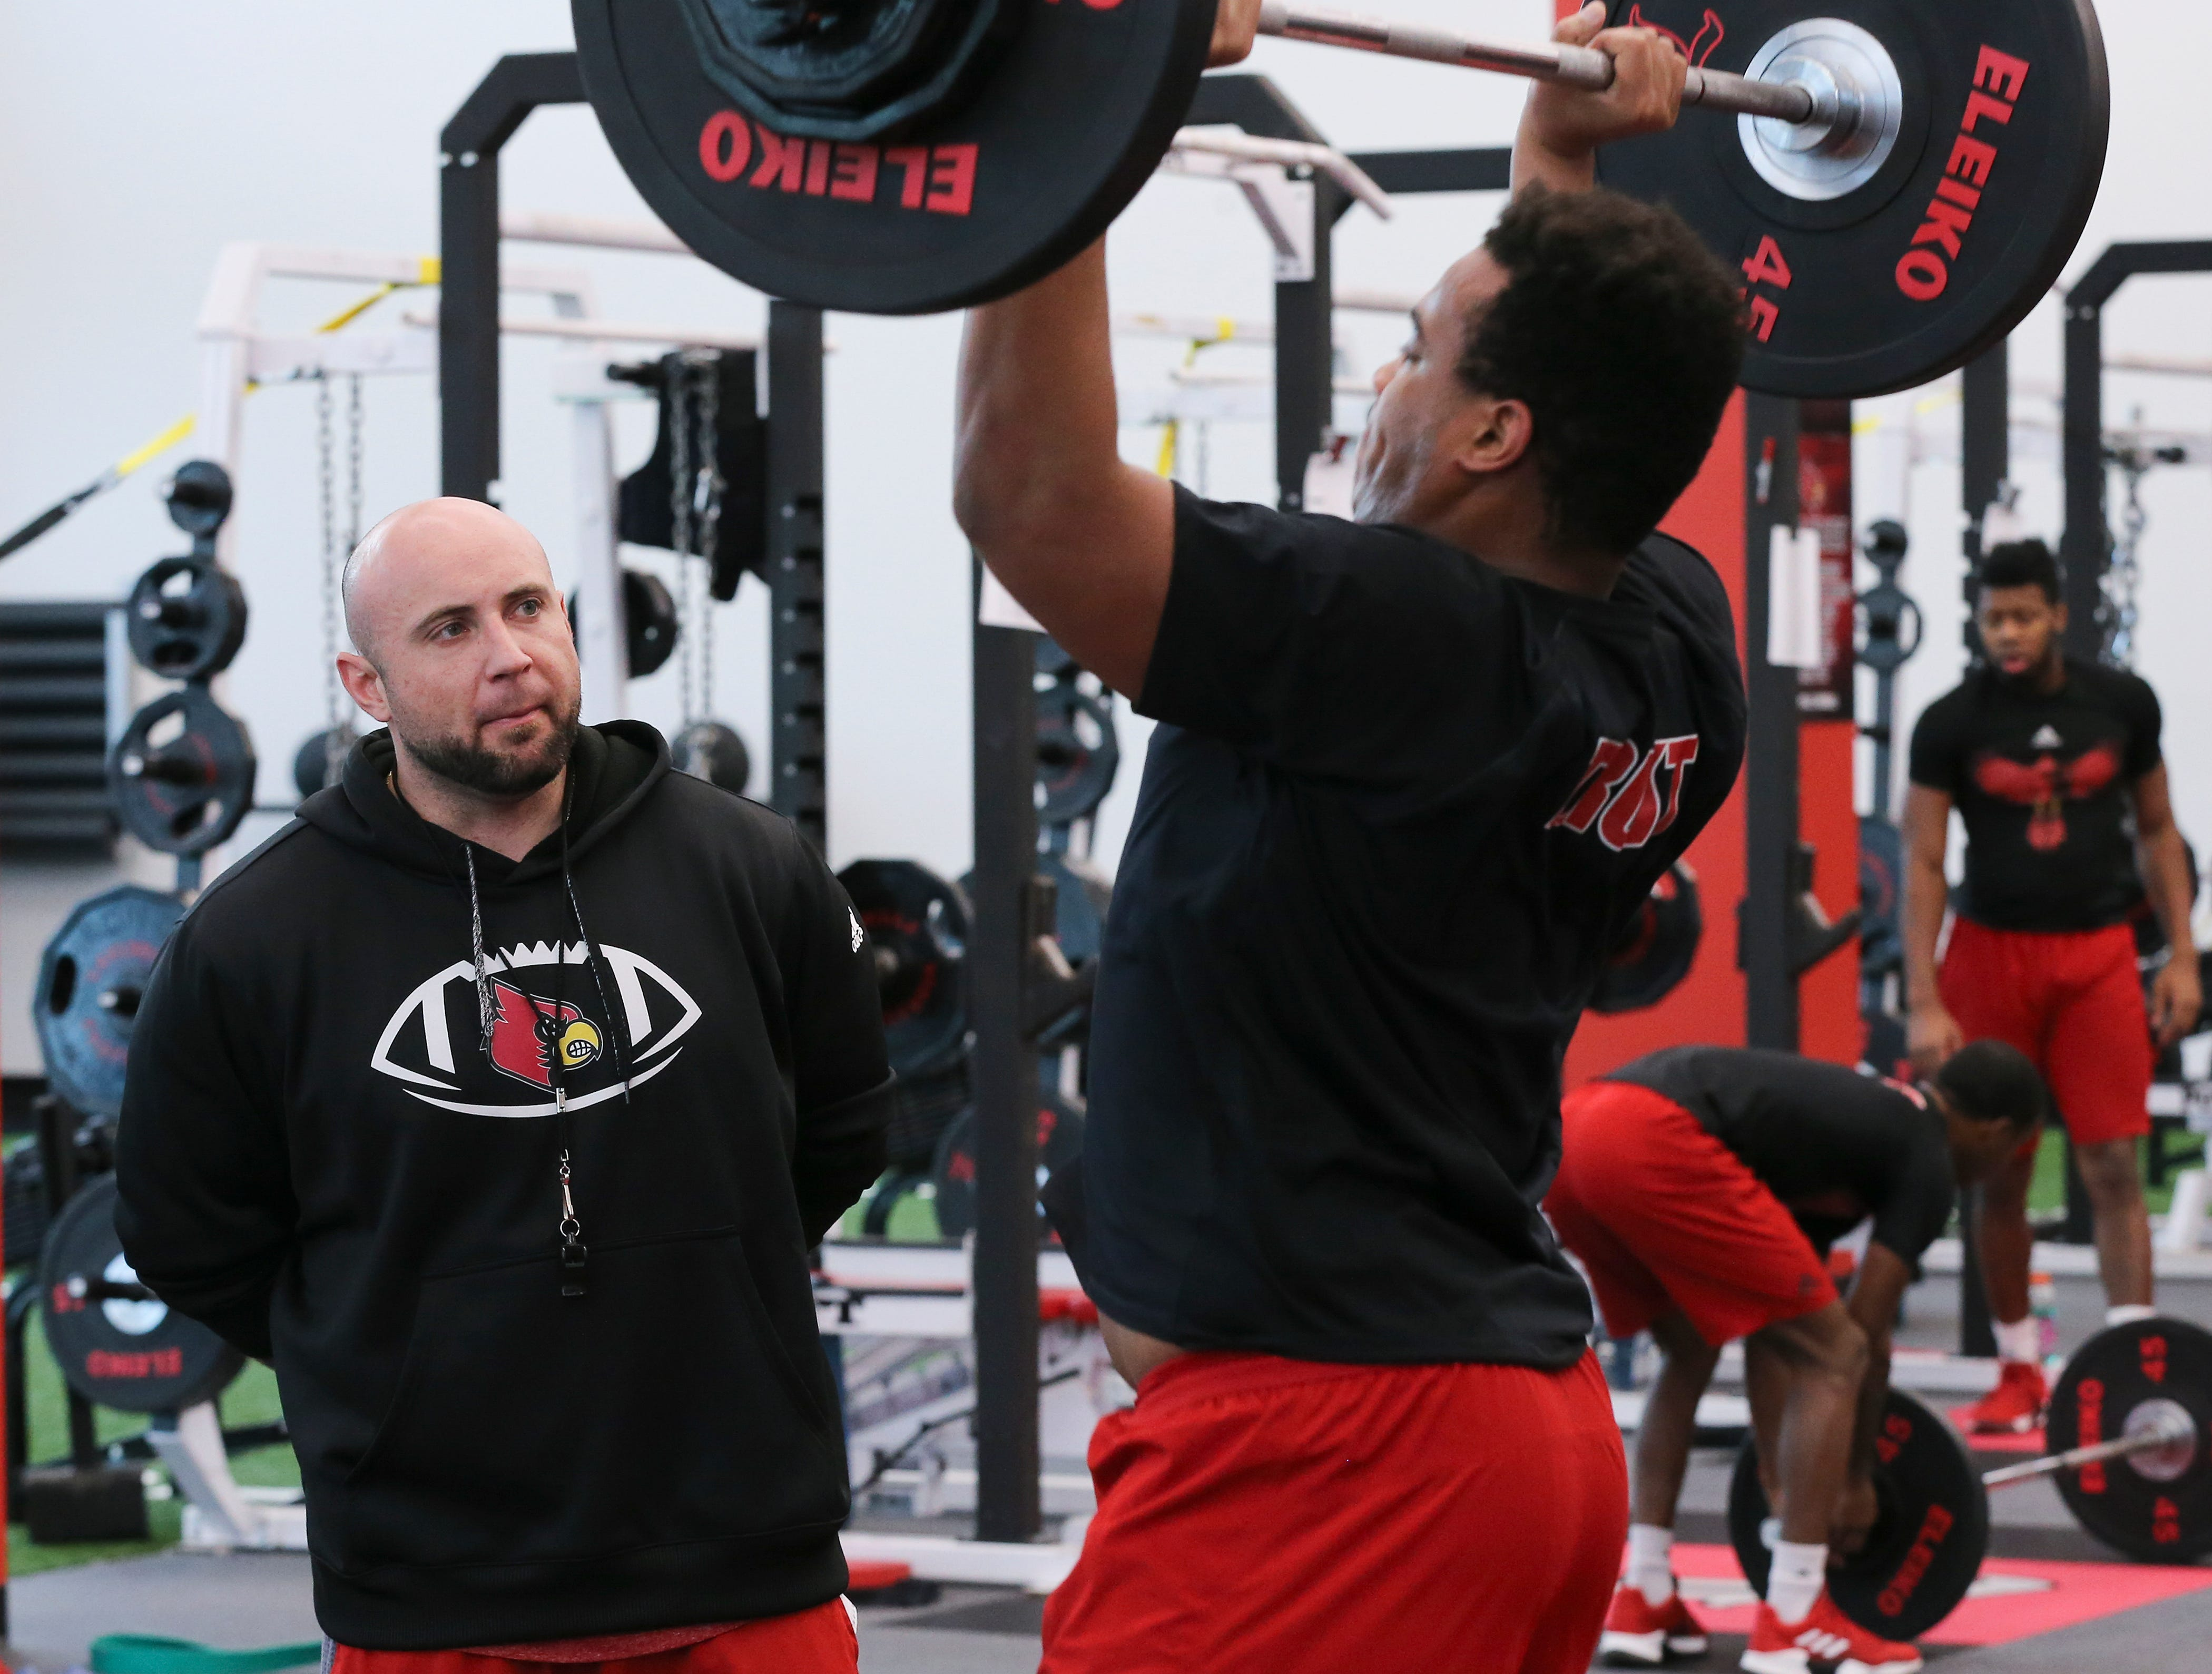 U of L strength coach Mike Sirignano, left, observes Caleb Chandler as he presesses weights during strength and conditioning at the Schnellenberger Complex.